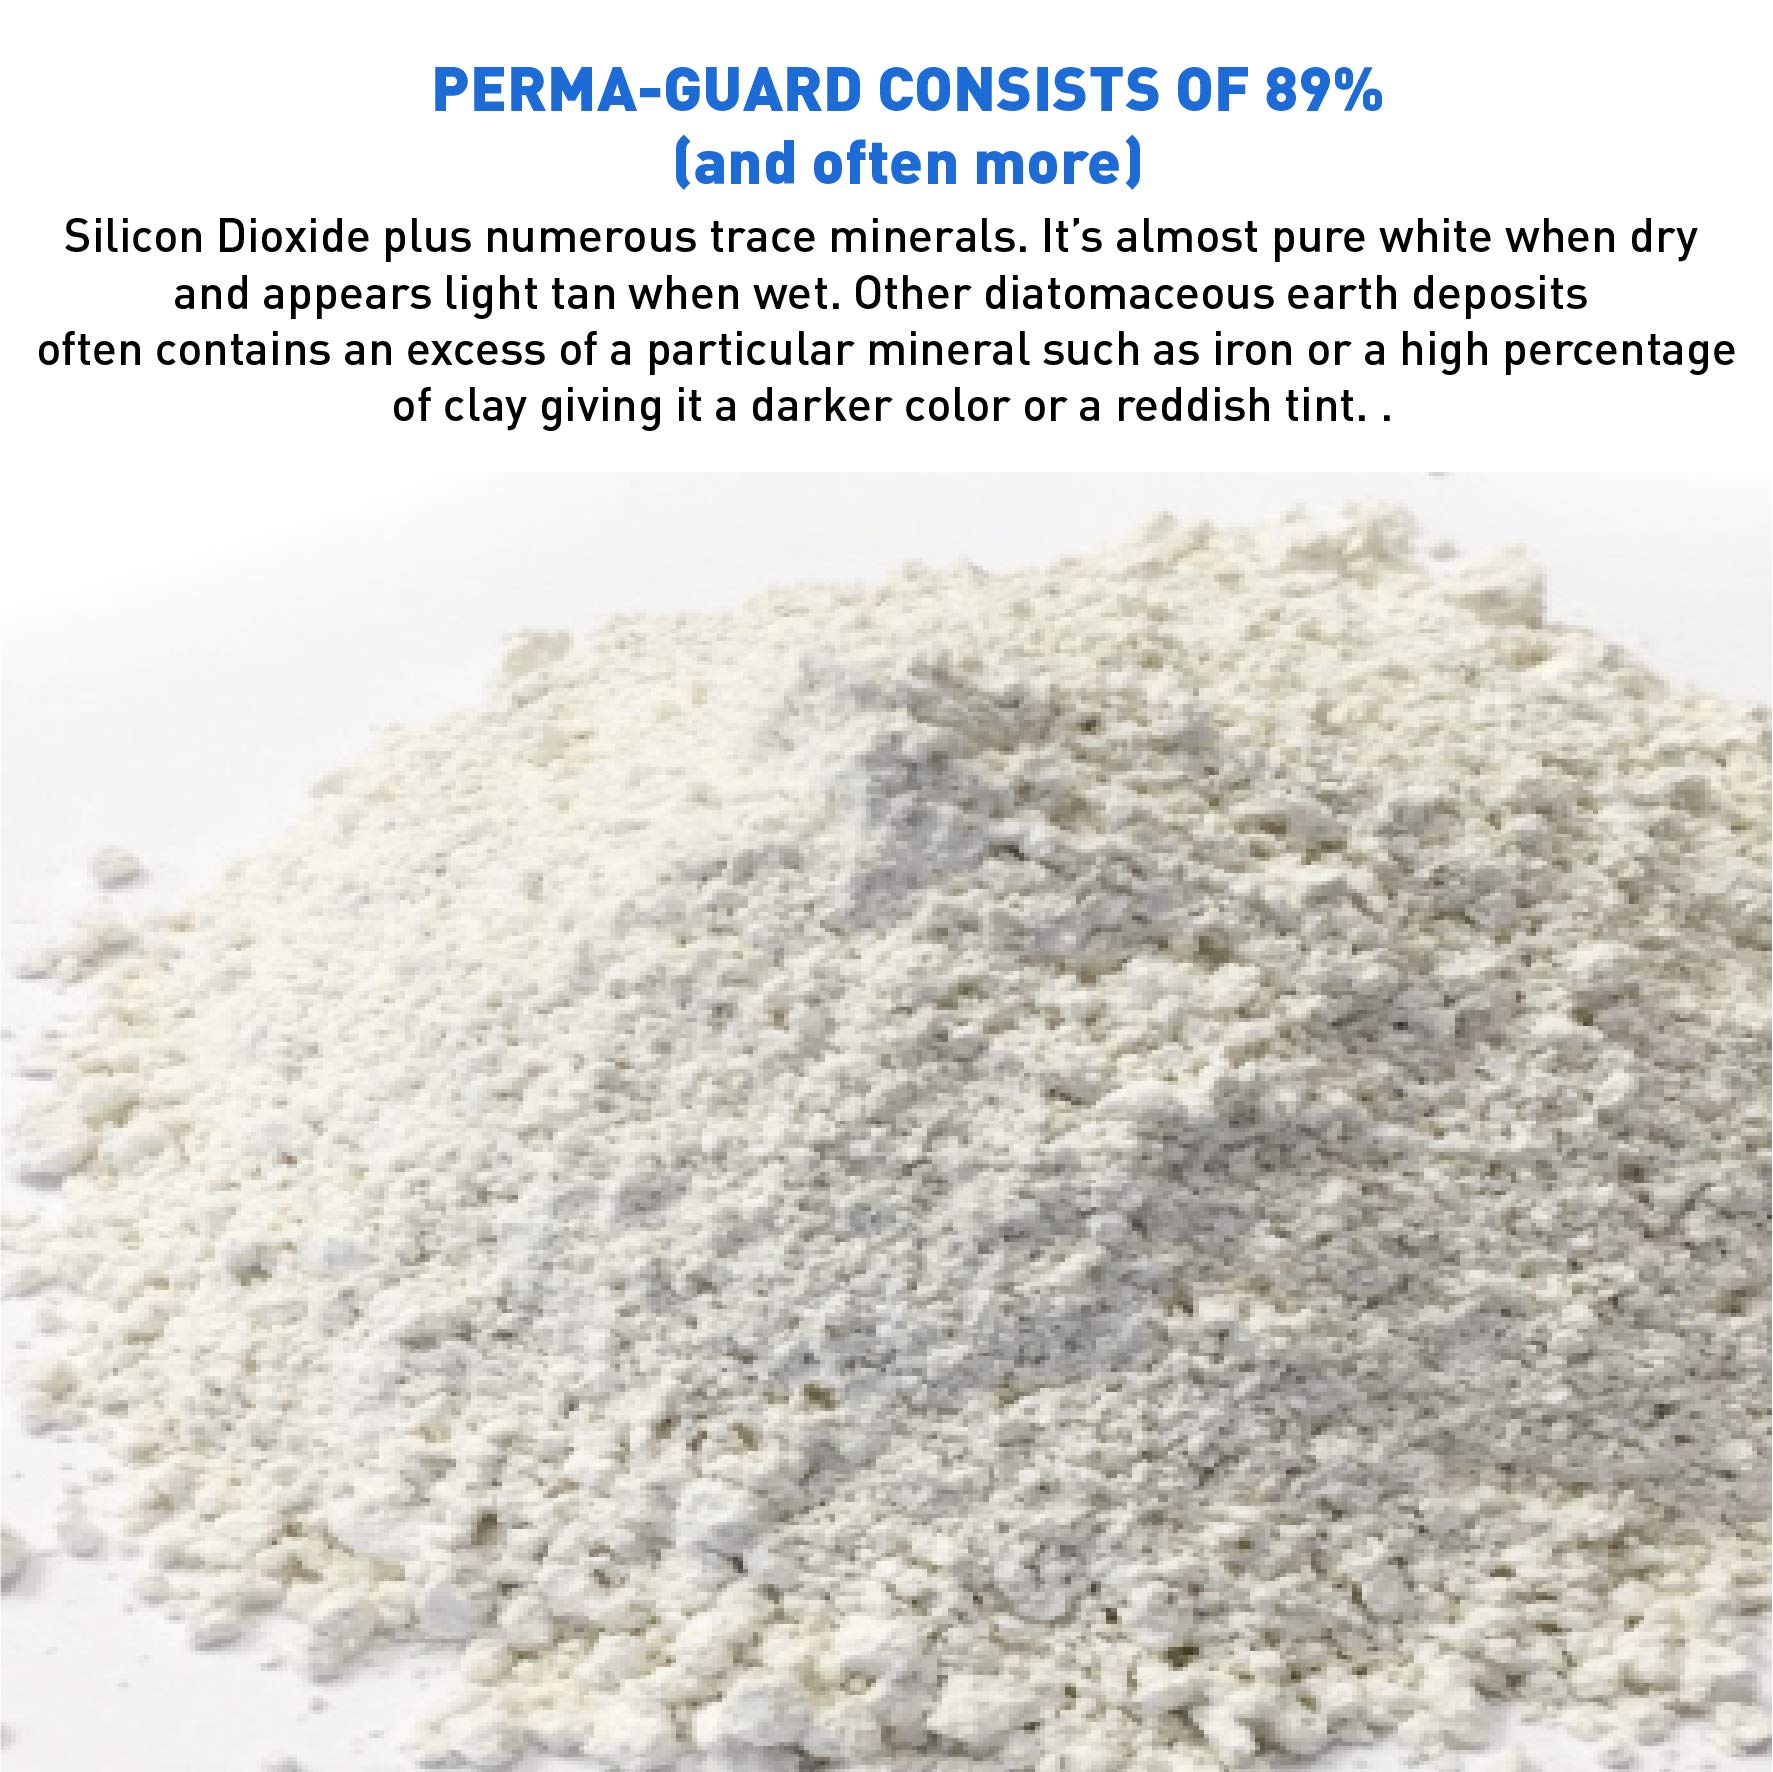 Perma Guard EGP-DE-50C erma Guard Diatomaceous Earth-DE Food Grade, 50 lb, White by Perma-Guard (Image #3)